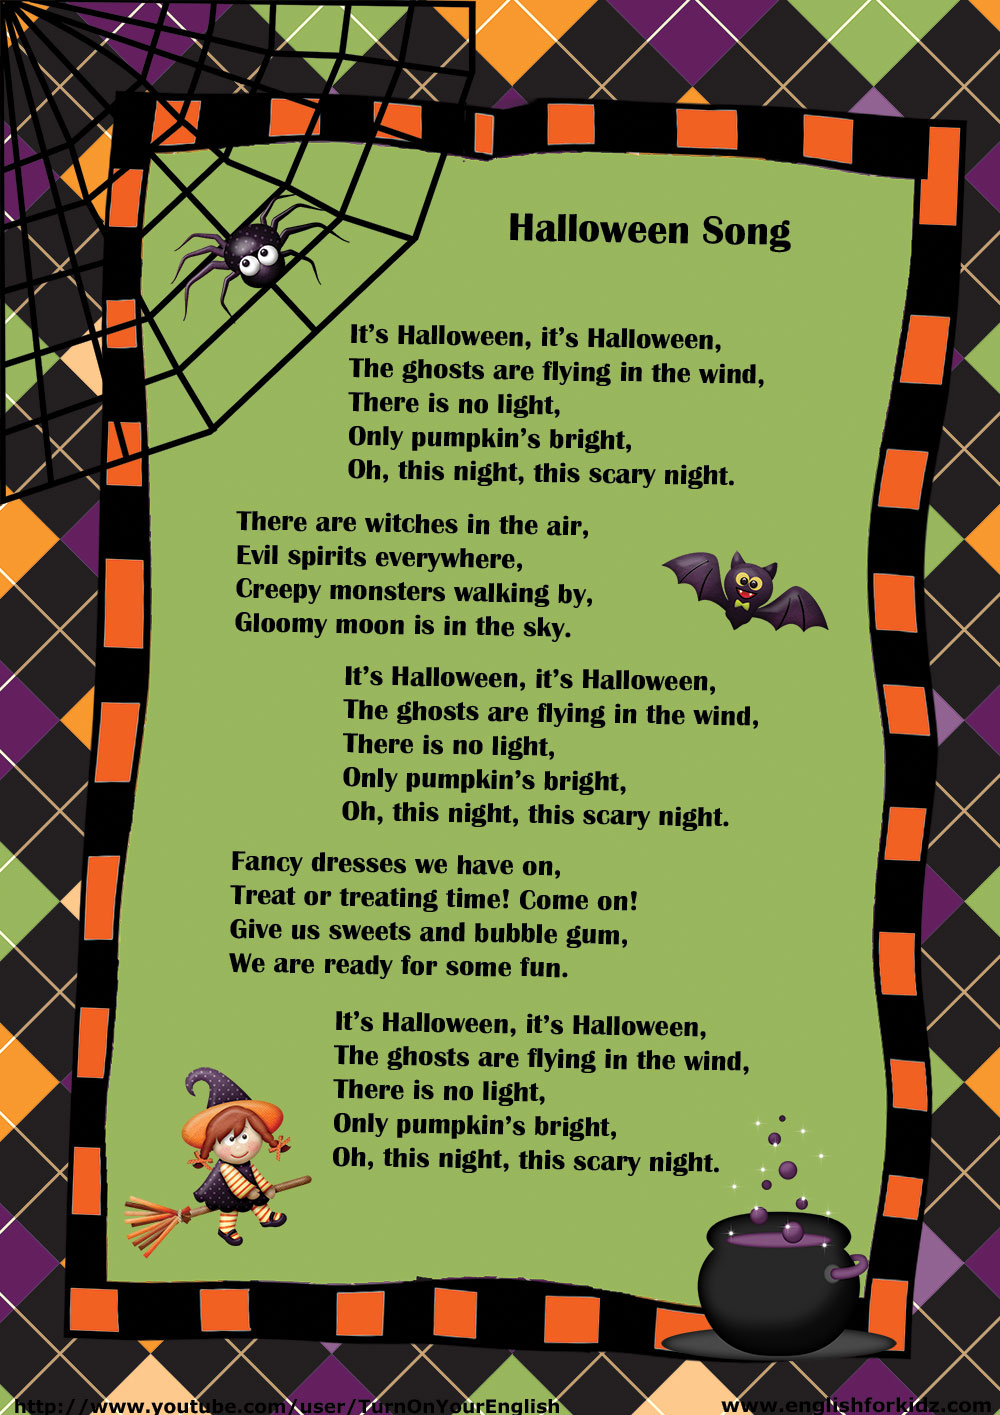 This Scary Night – Halloween Song for Kids